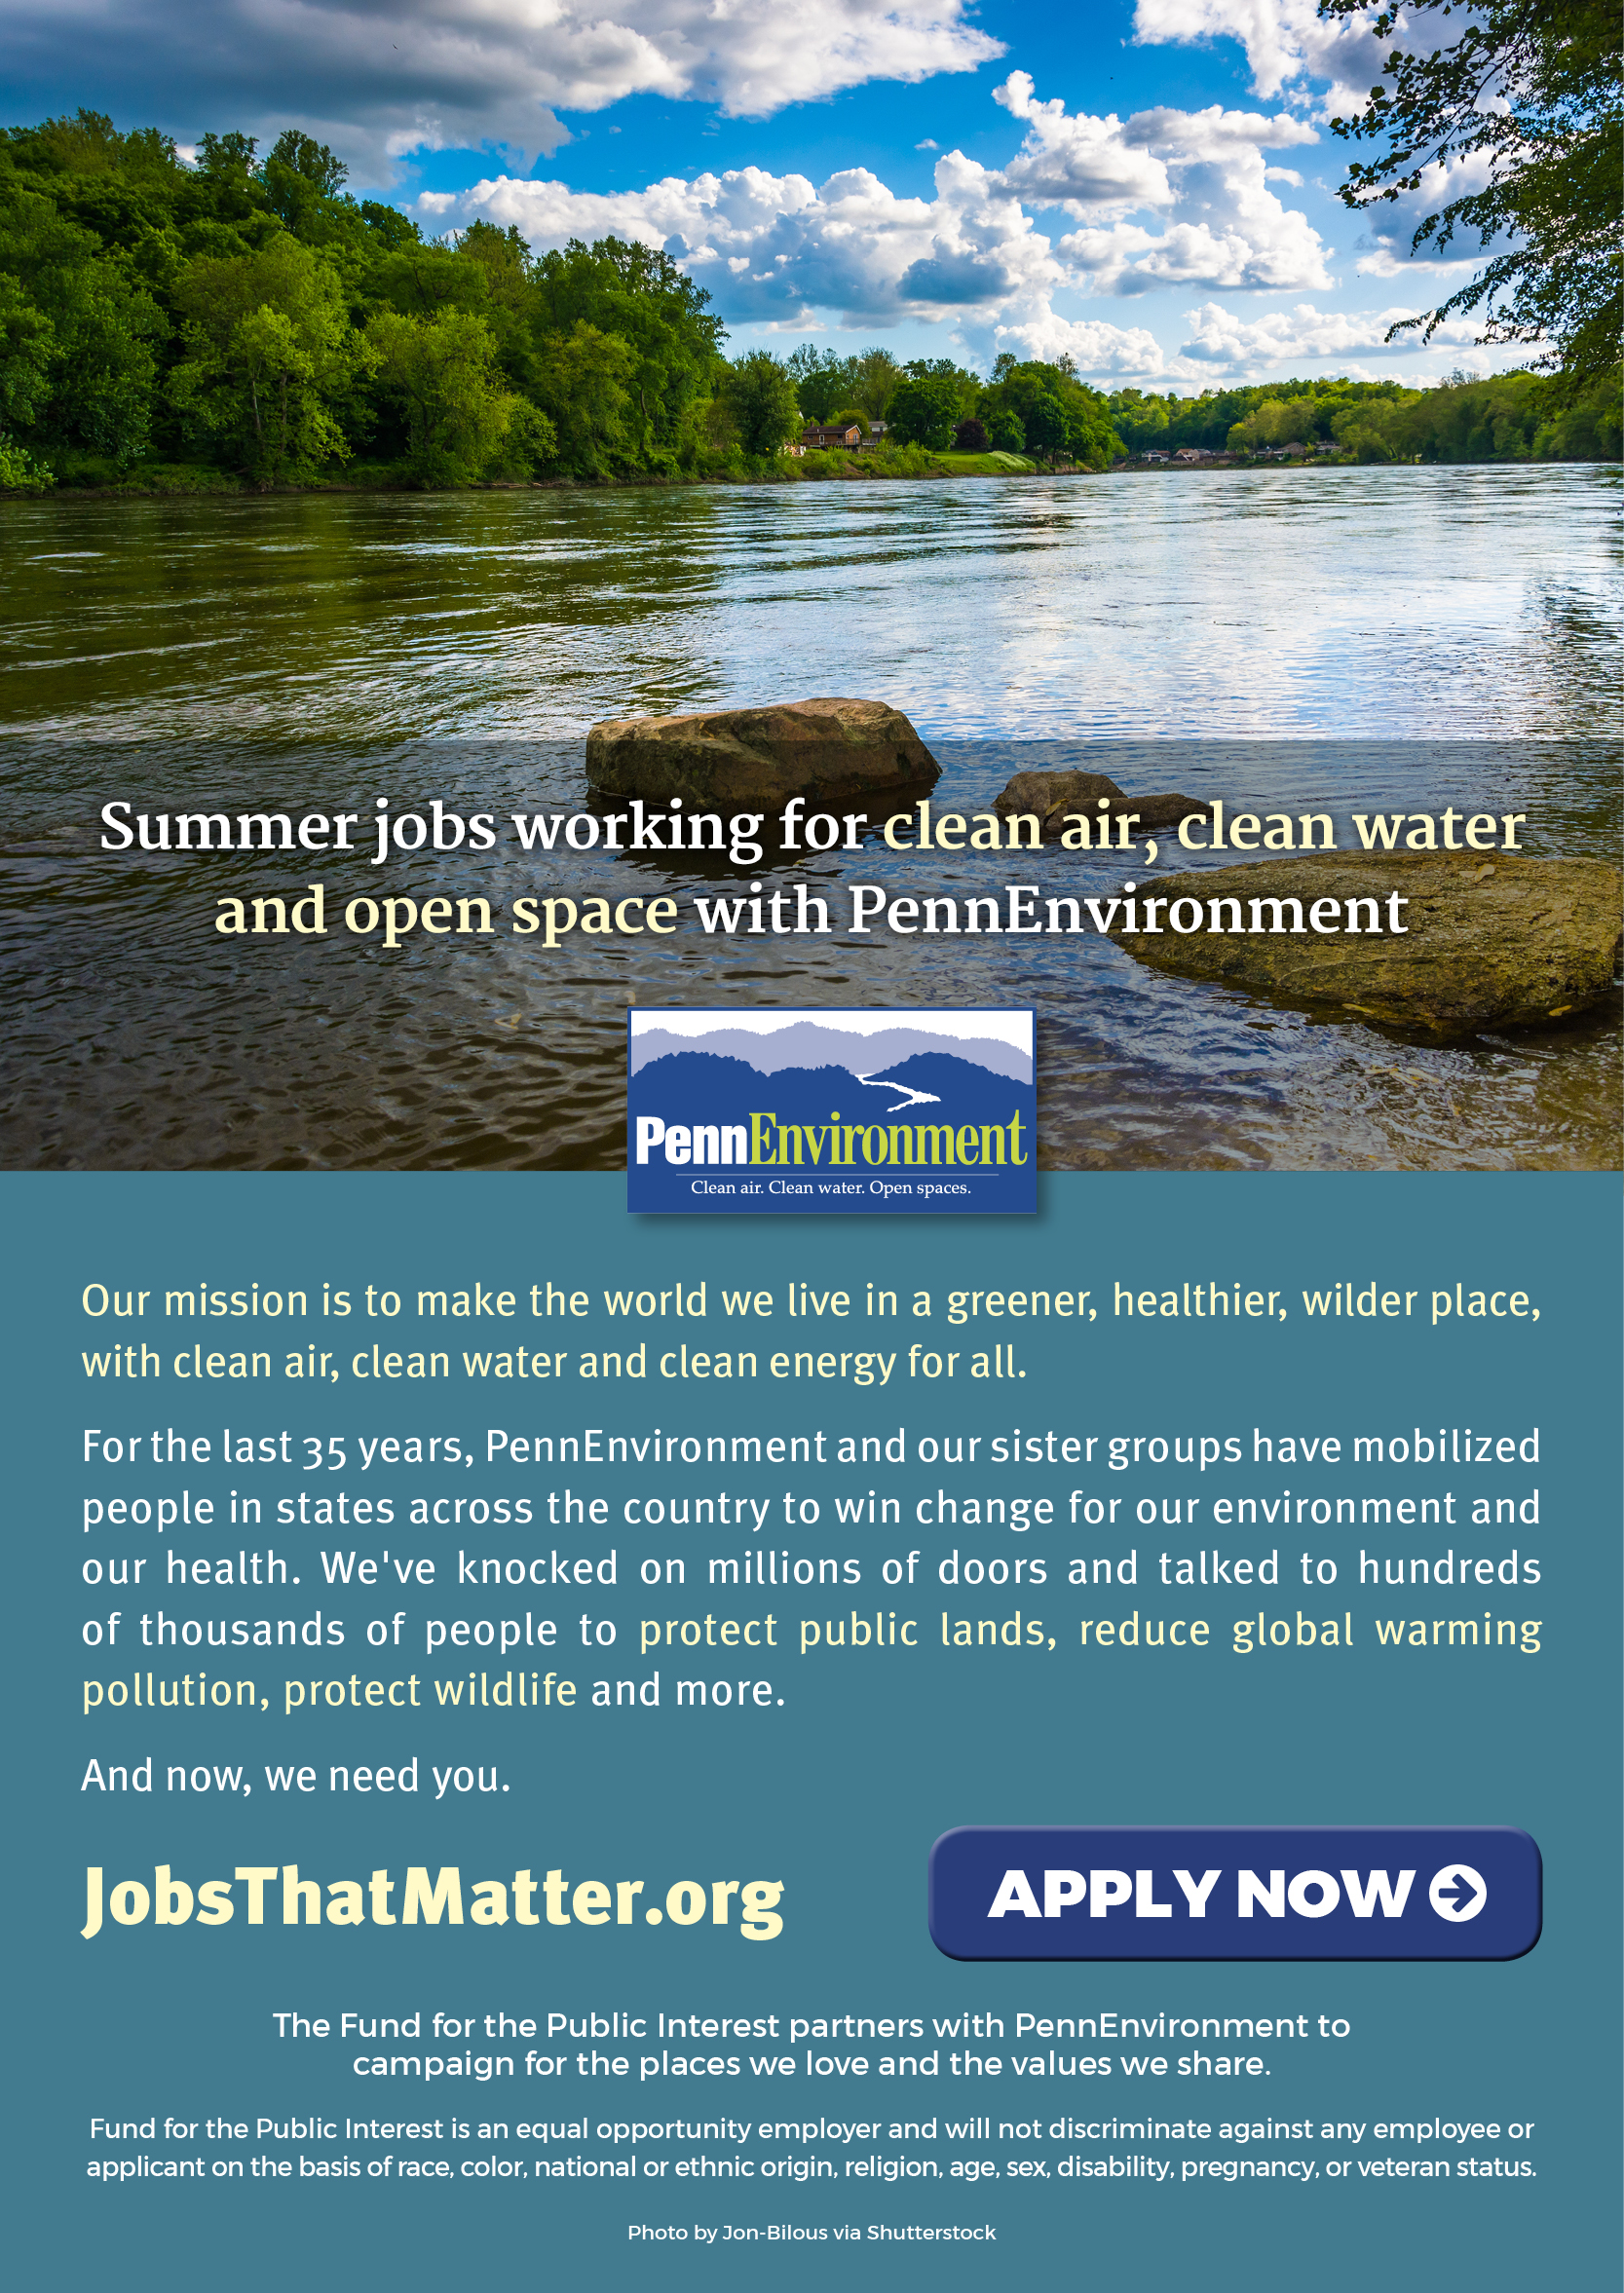 The Fund for the Public Interest partners with Environment America to campaign for the places we love and the values we share.